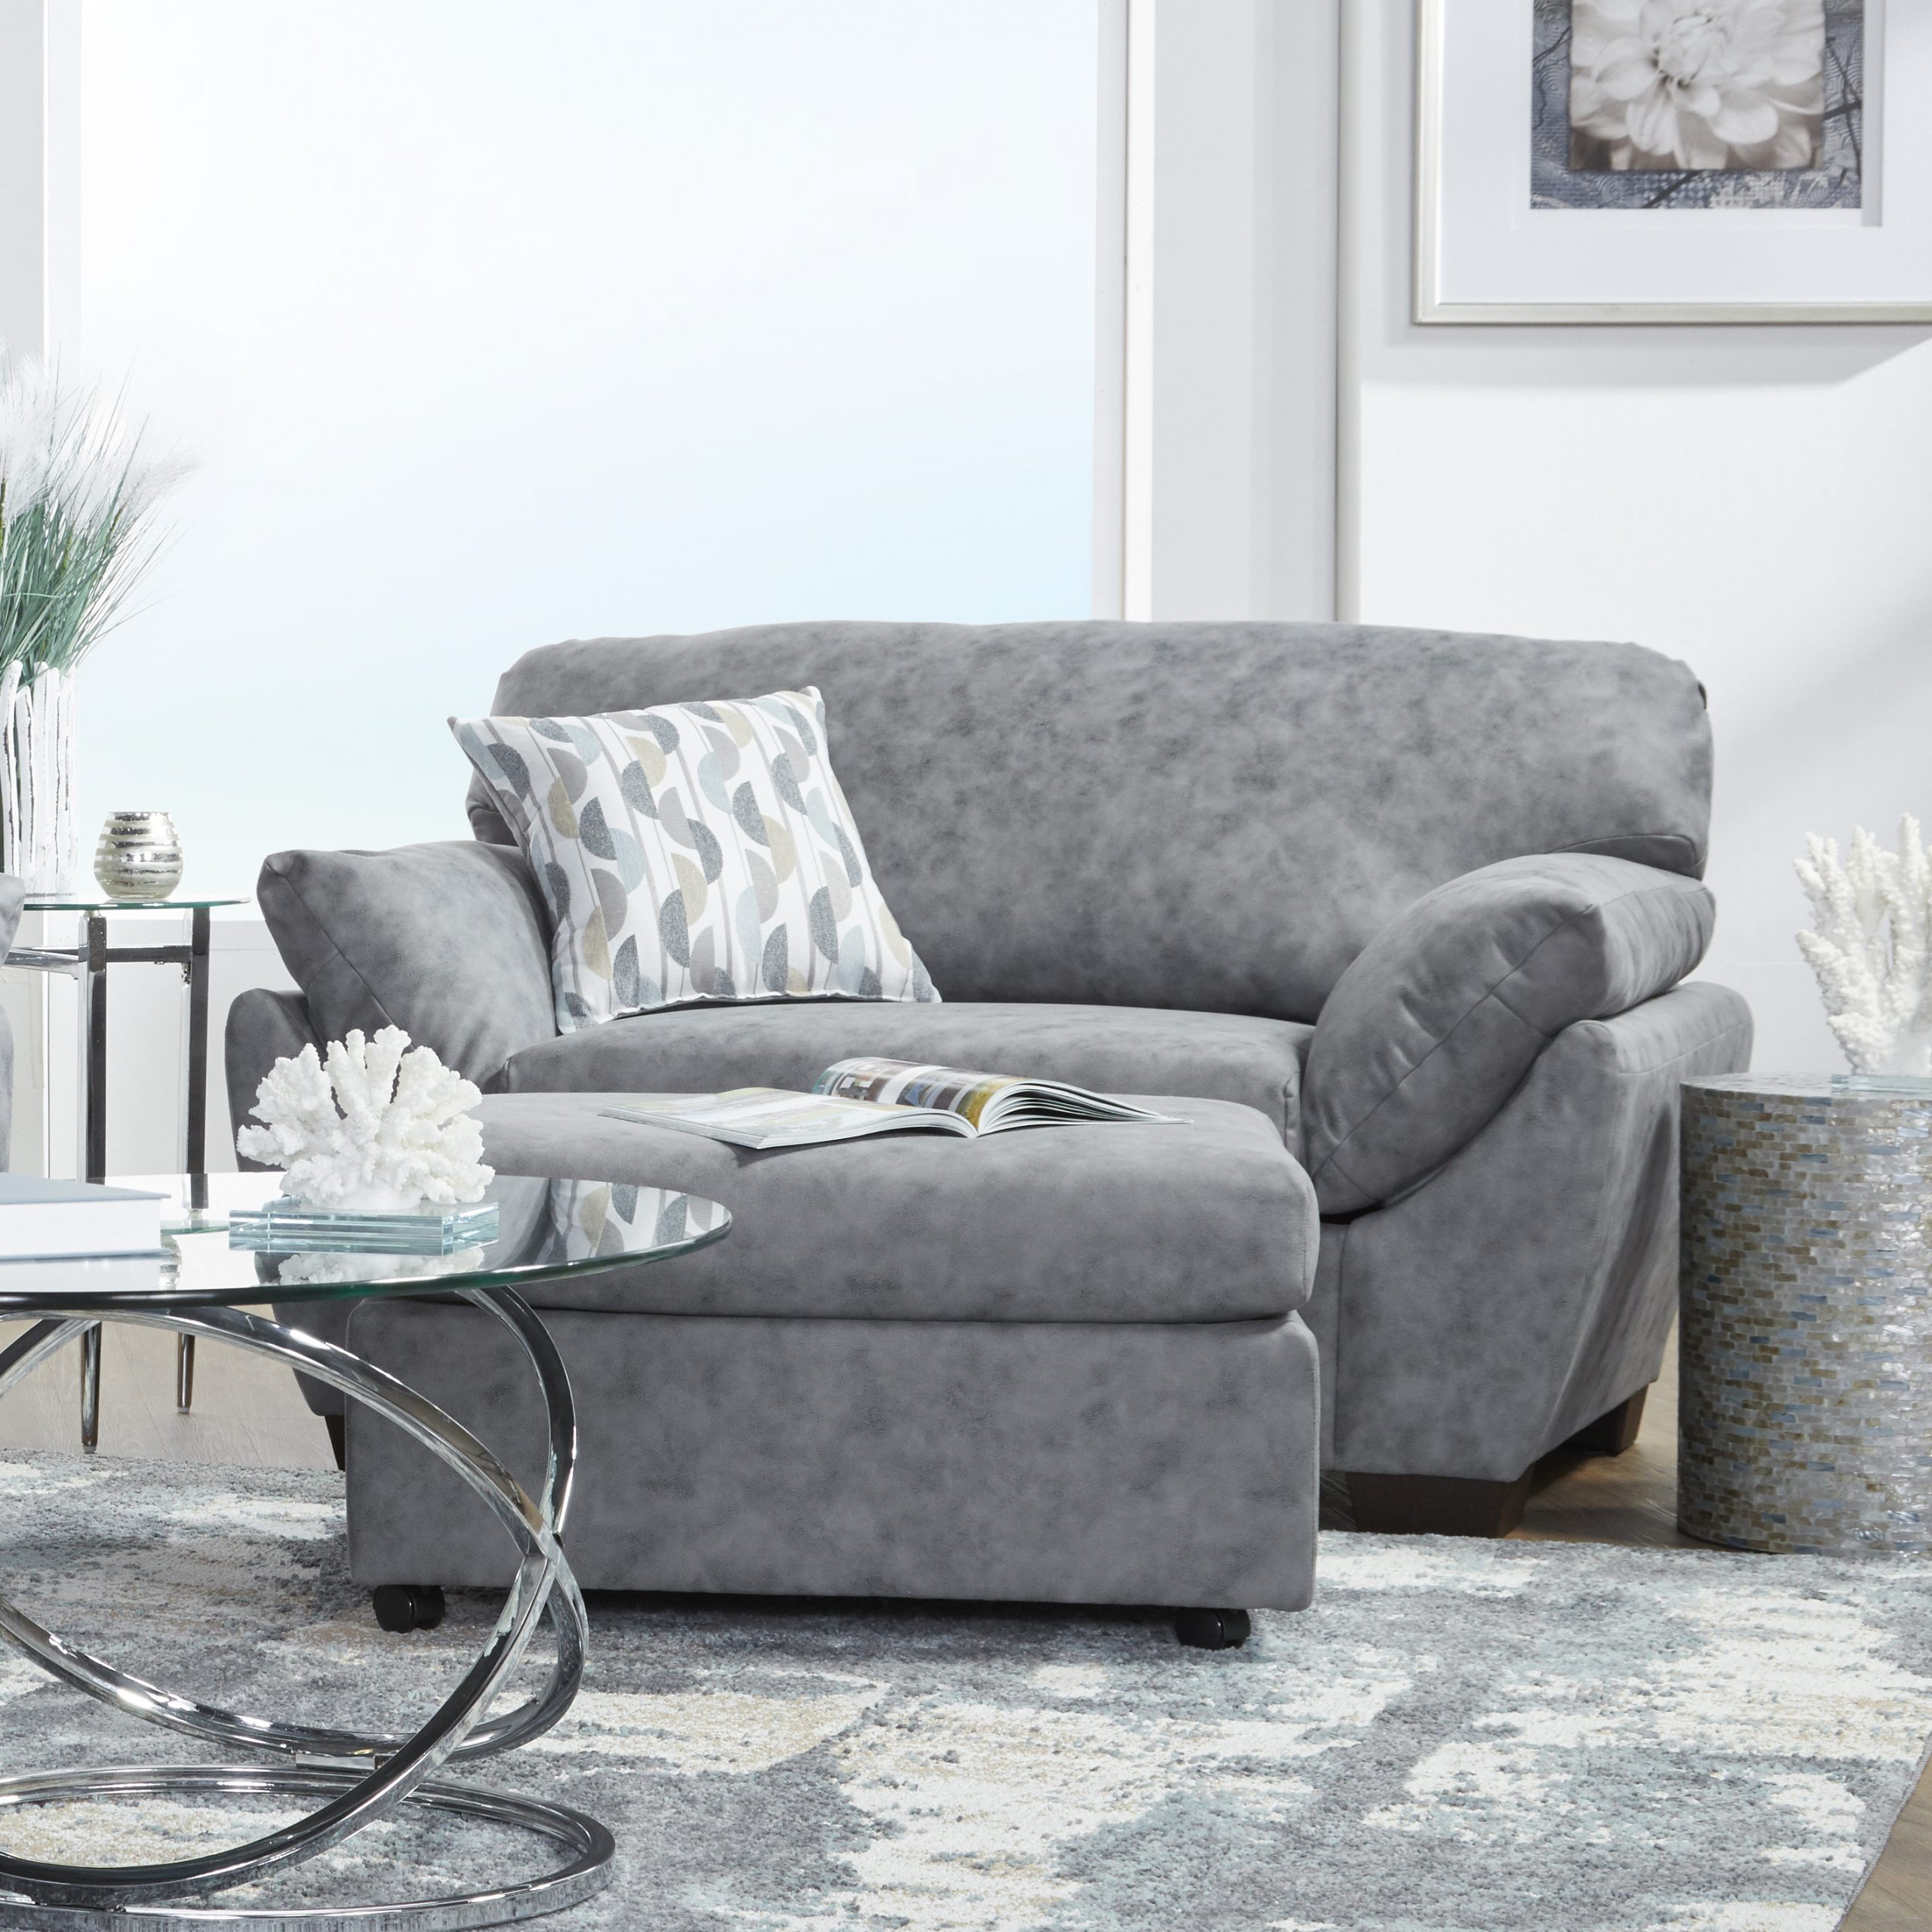 Lore Modern Fabric Pillow Arm Chair With Ottoman In Dolphin Bay Gray – Walmart Throughout Trendy Modern Armchairs And Ottoman (View 15 of 20)